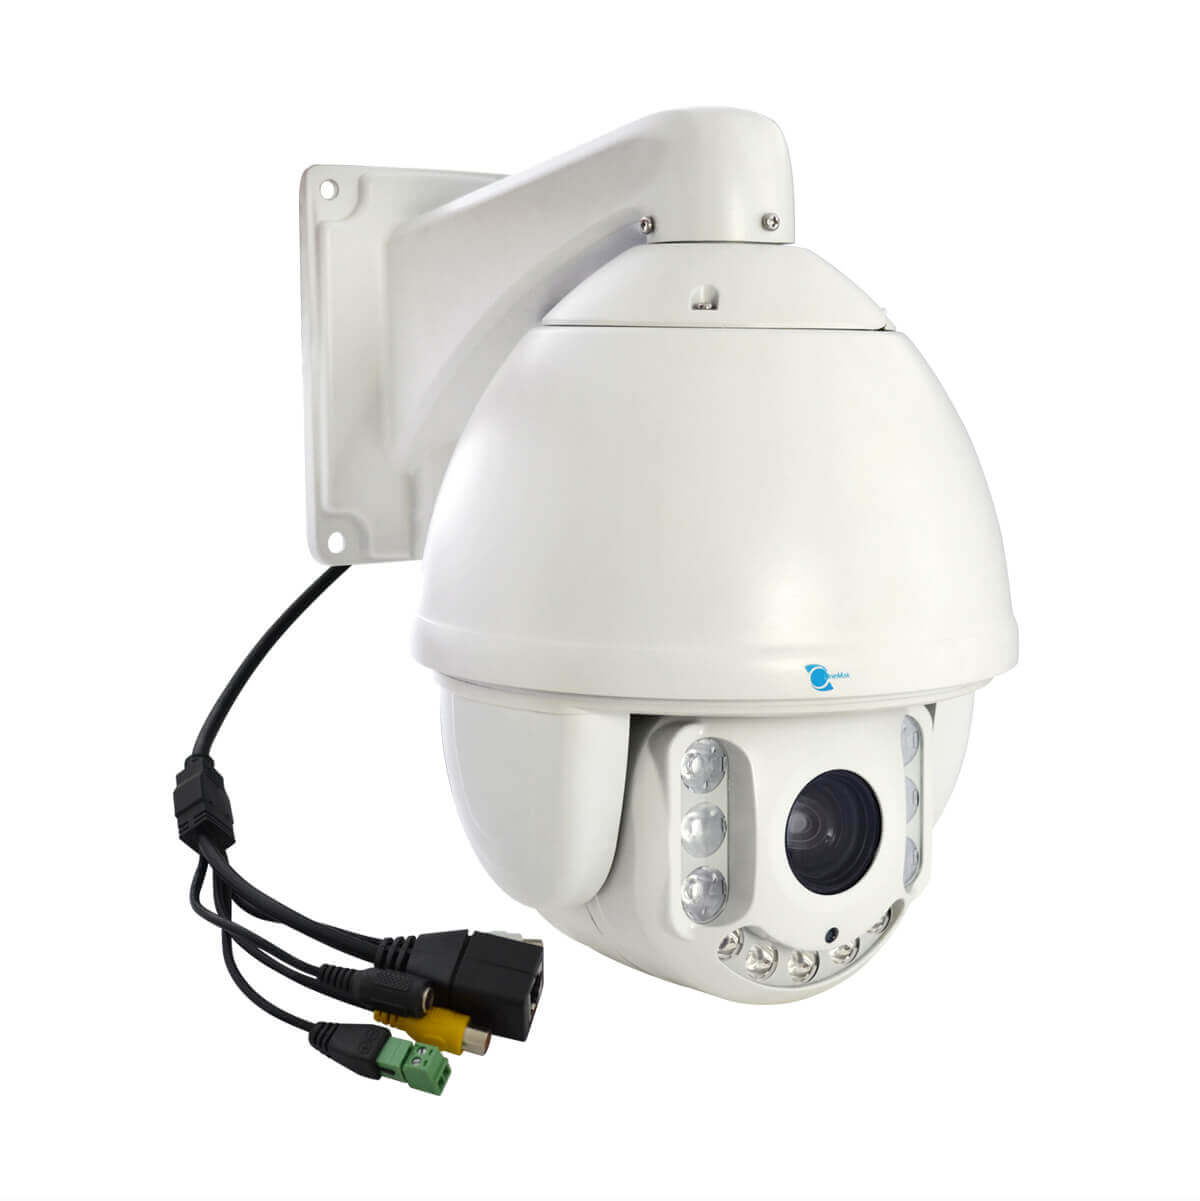 Camara Domo PTZ, 1/3 CMOS Aptina, 2Mp, H264, IR-CUT, IP66